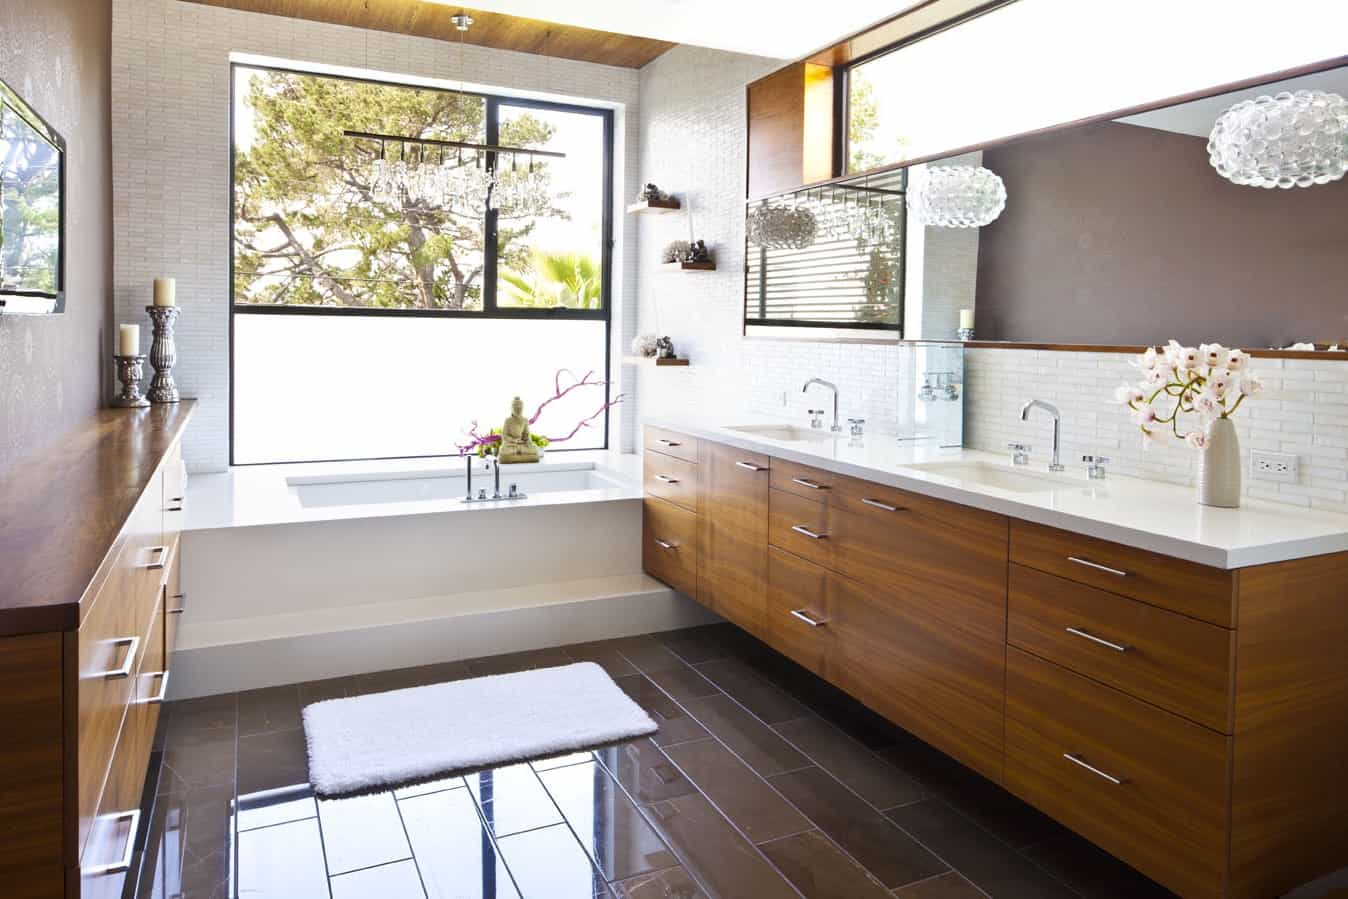 2017 Neutral Bathroom Boasts Midcentury Modern Vanity (Image 7 of 29)